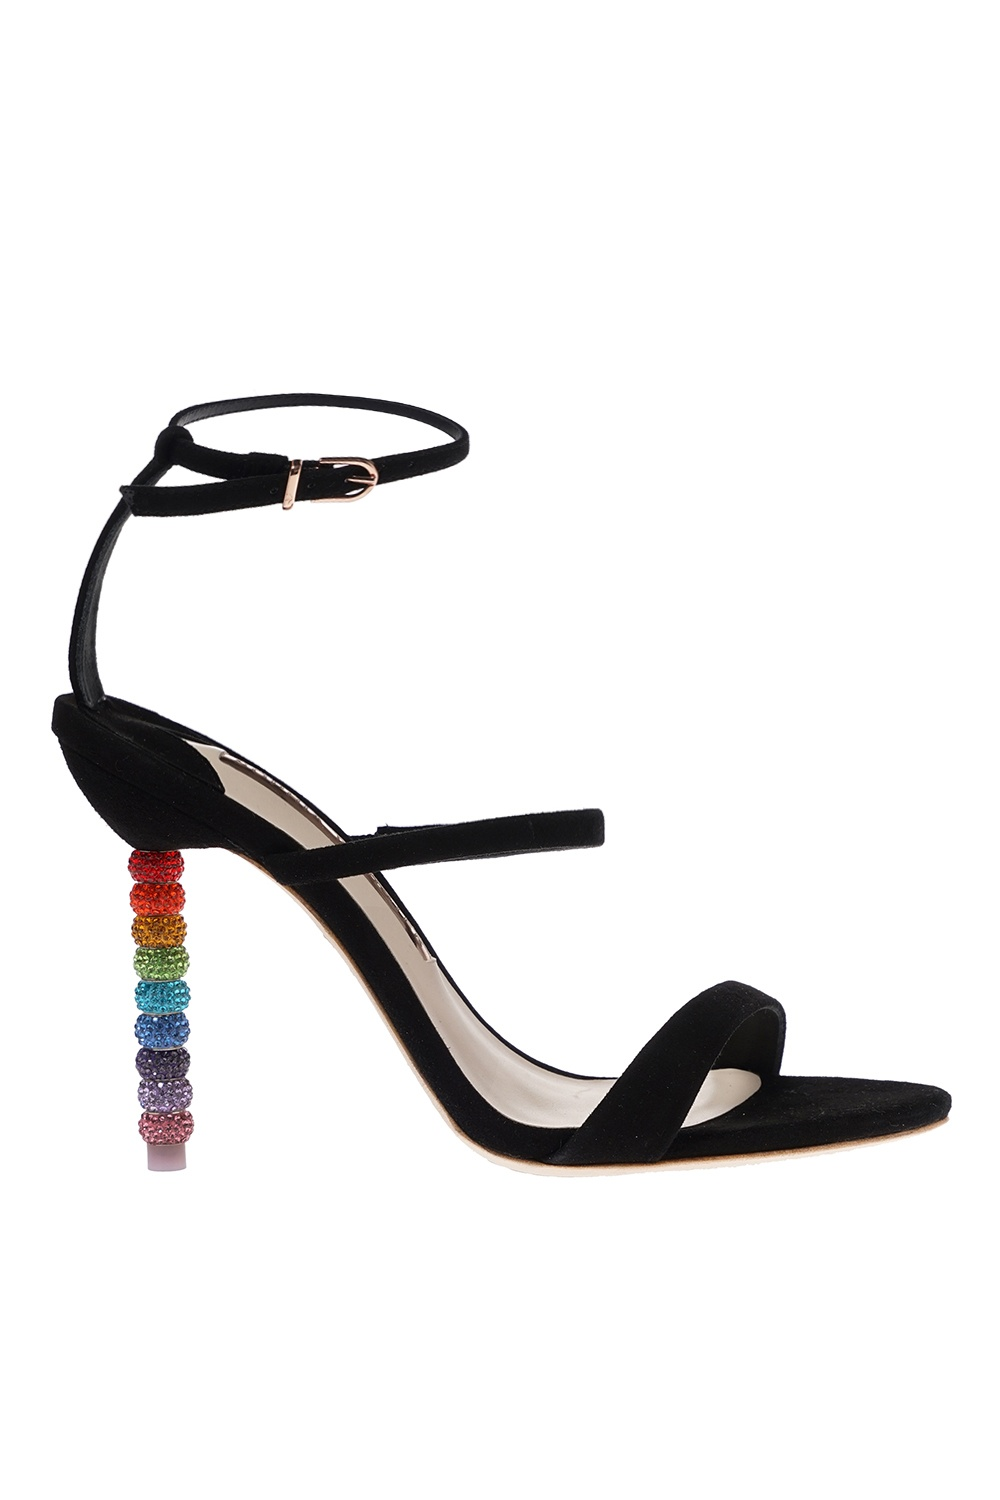 Sophia Webster 'Rosalind' heeled sandals